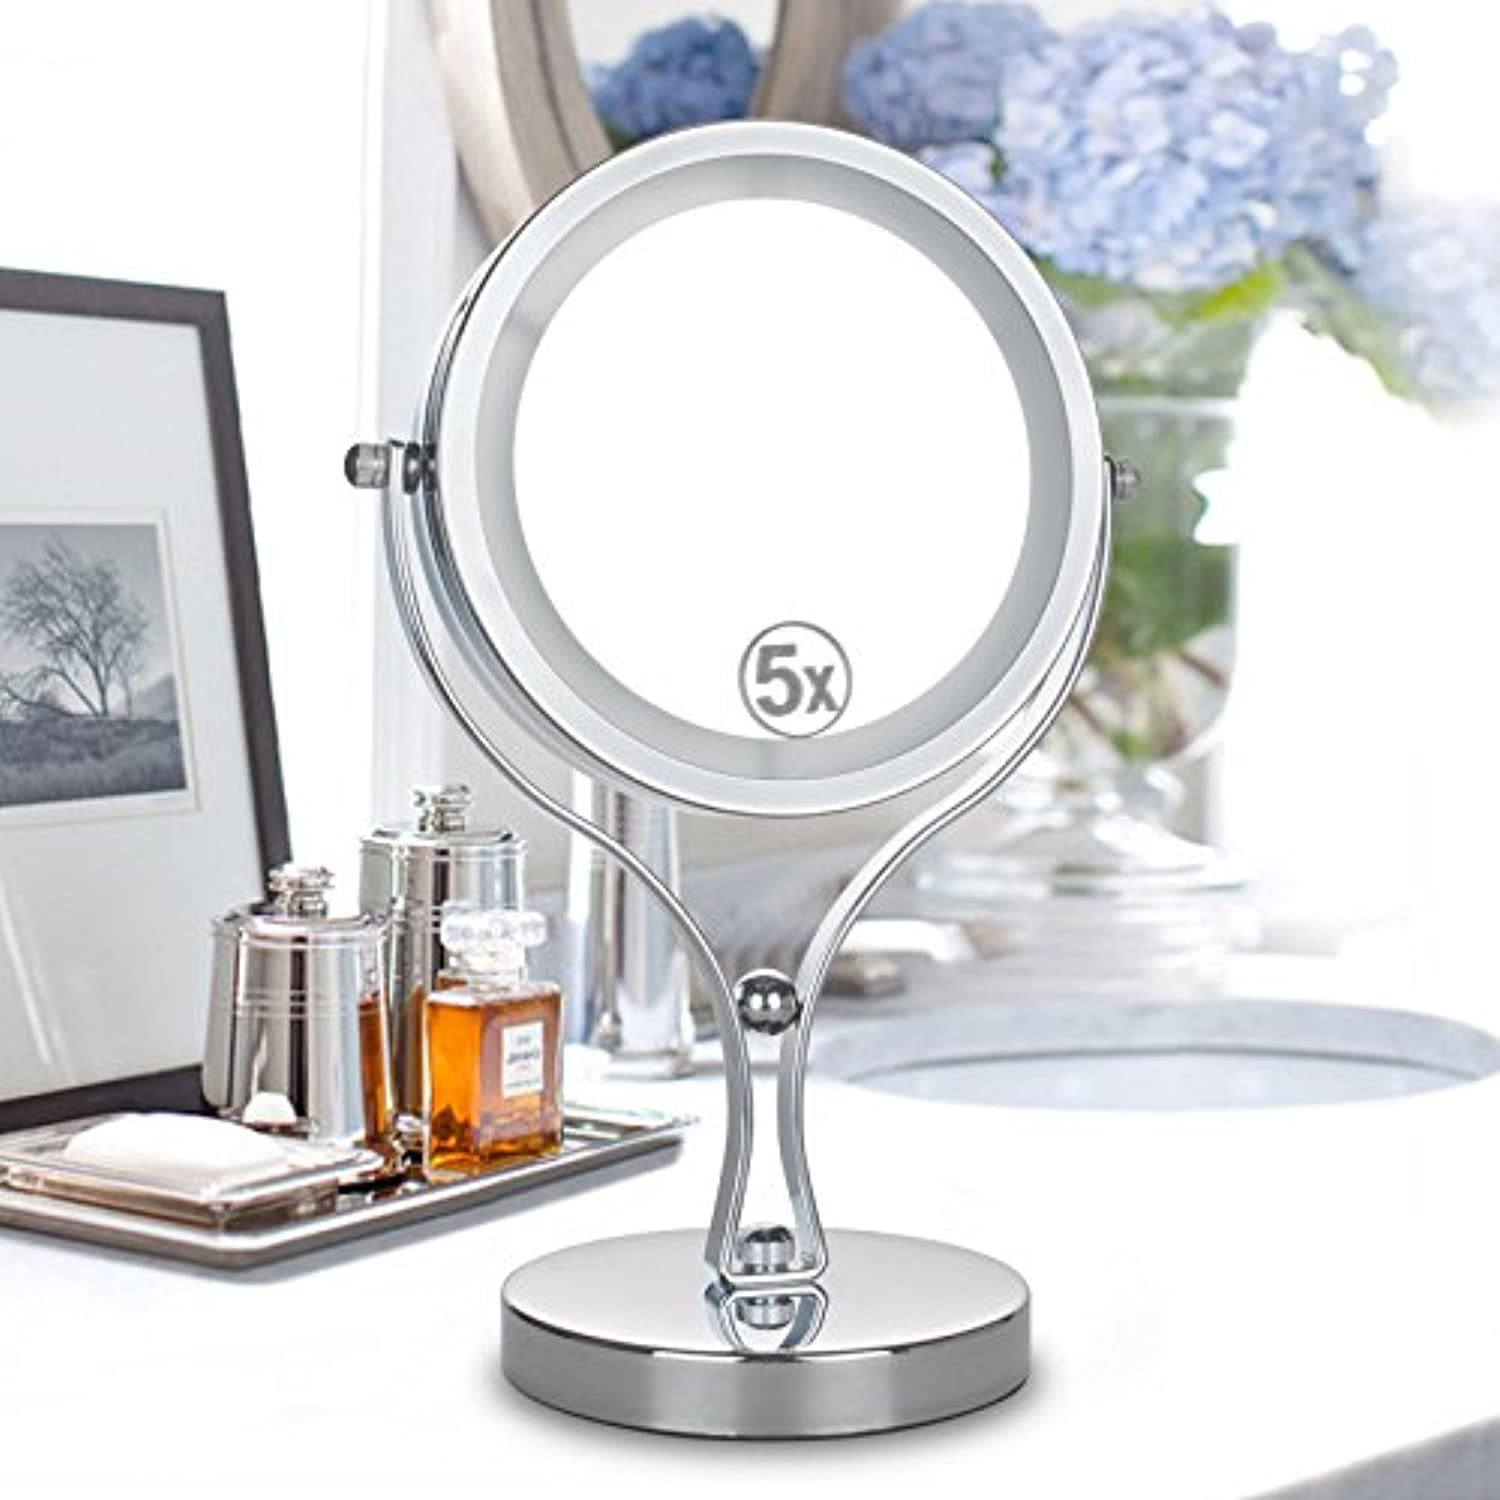 6 inch 5X Magnifying LED Lighted Double Size Makeup Mirror Stainless Steel 360 Degree redation Table Stand Mirror,14.9cmx18.3cm